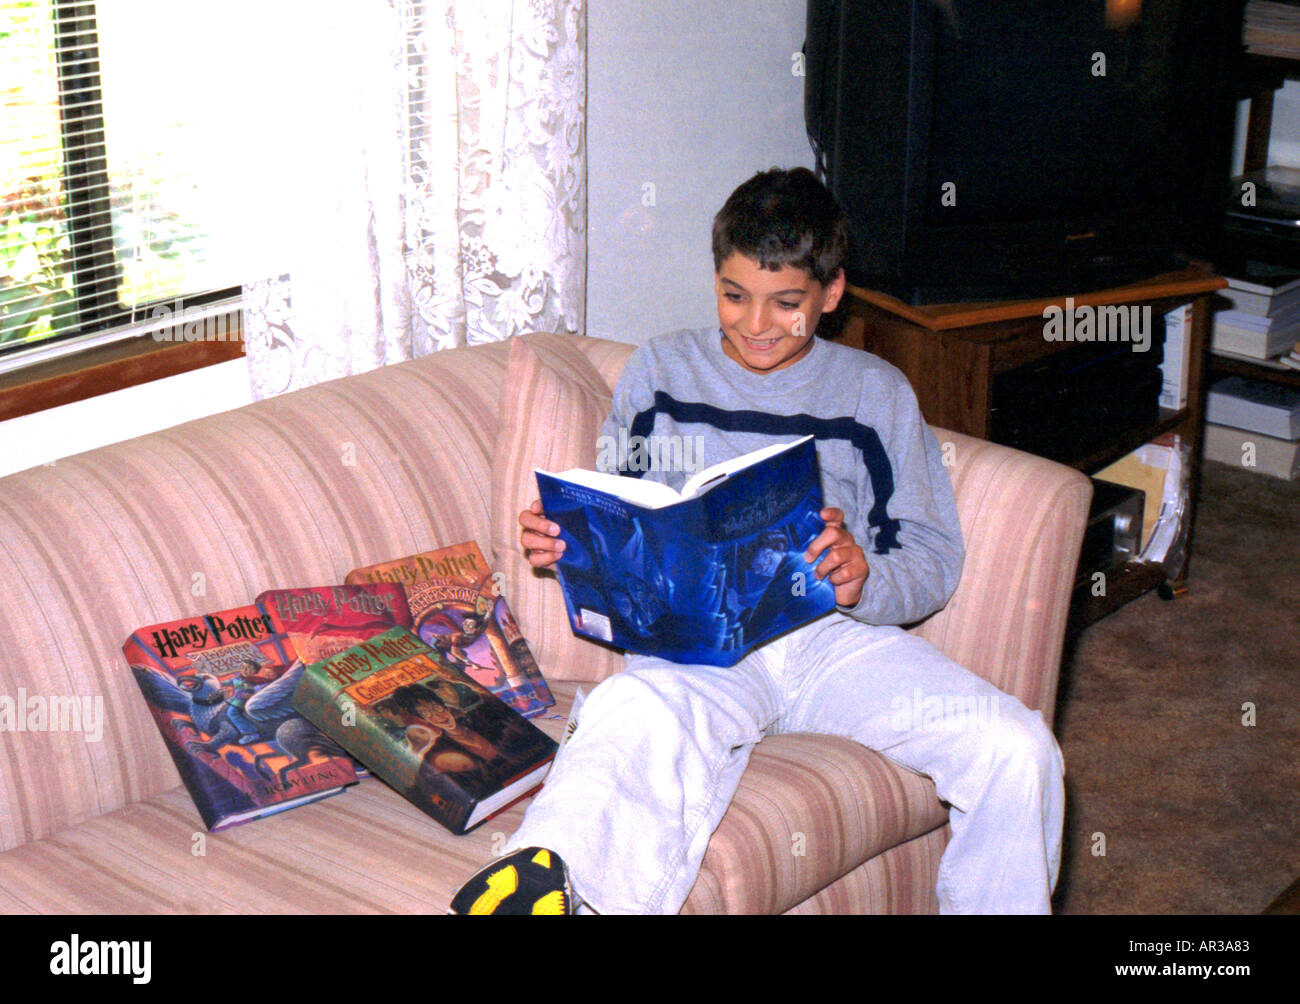 Enthusiastic young reader is enthralled with his copy of the fifth Harry Potter book - Stock Image